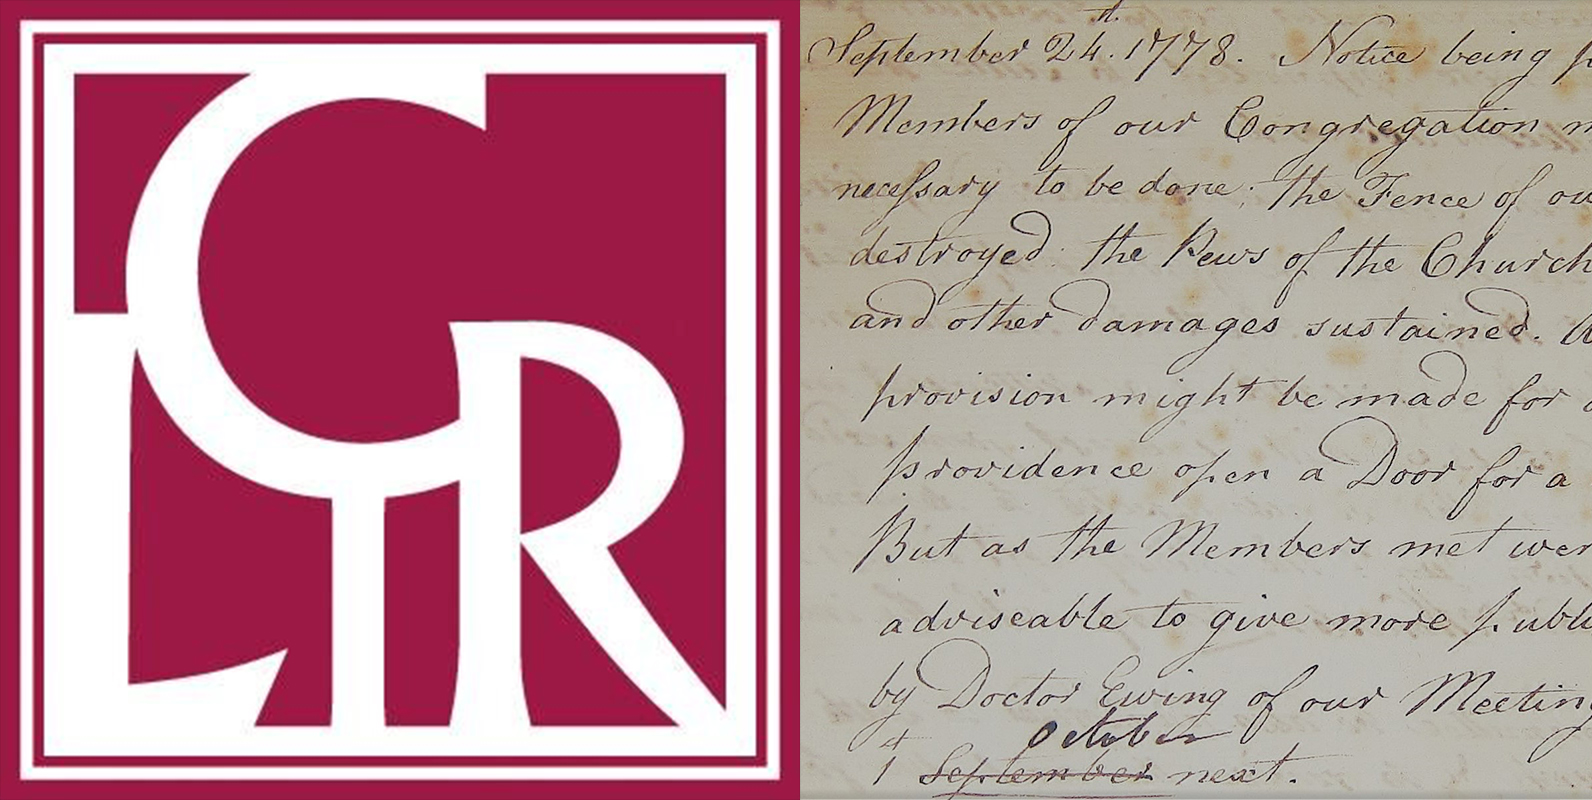 CLIR logo and session minutes from Second Presbyterian Church, Philadelphia, PA, 1778.